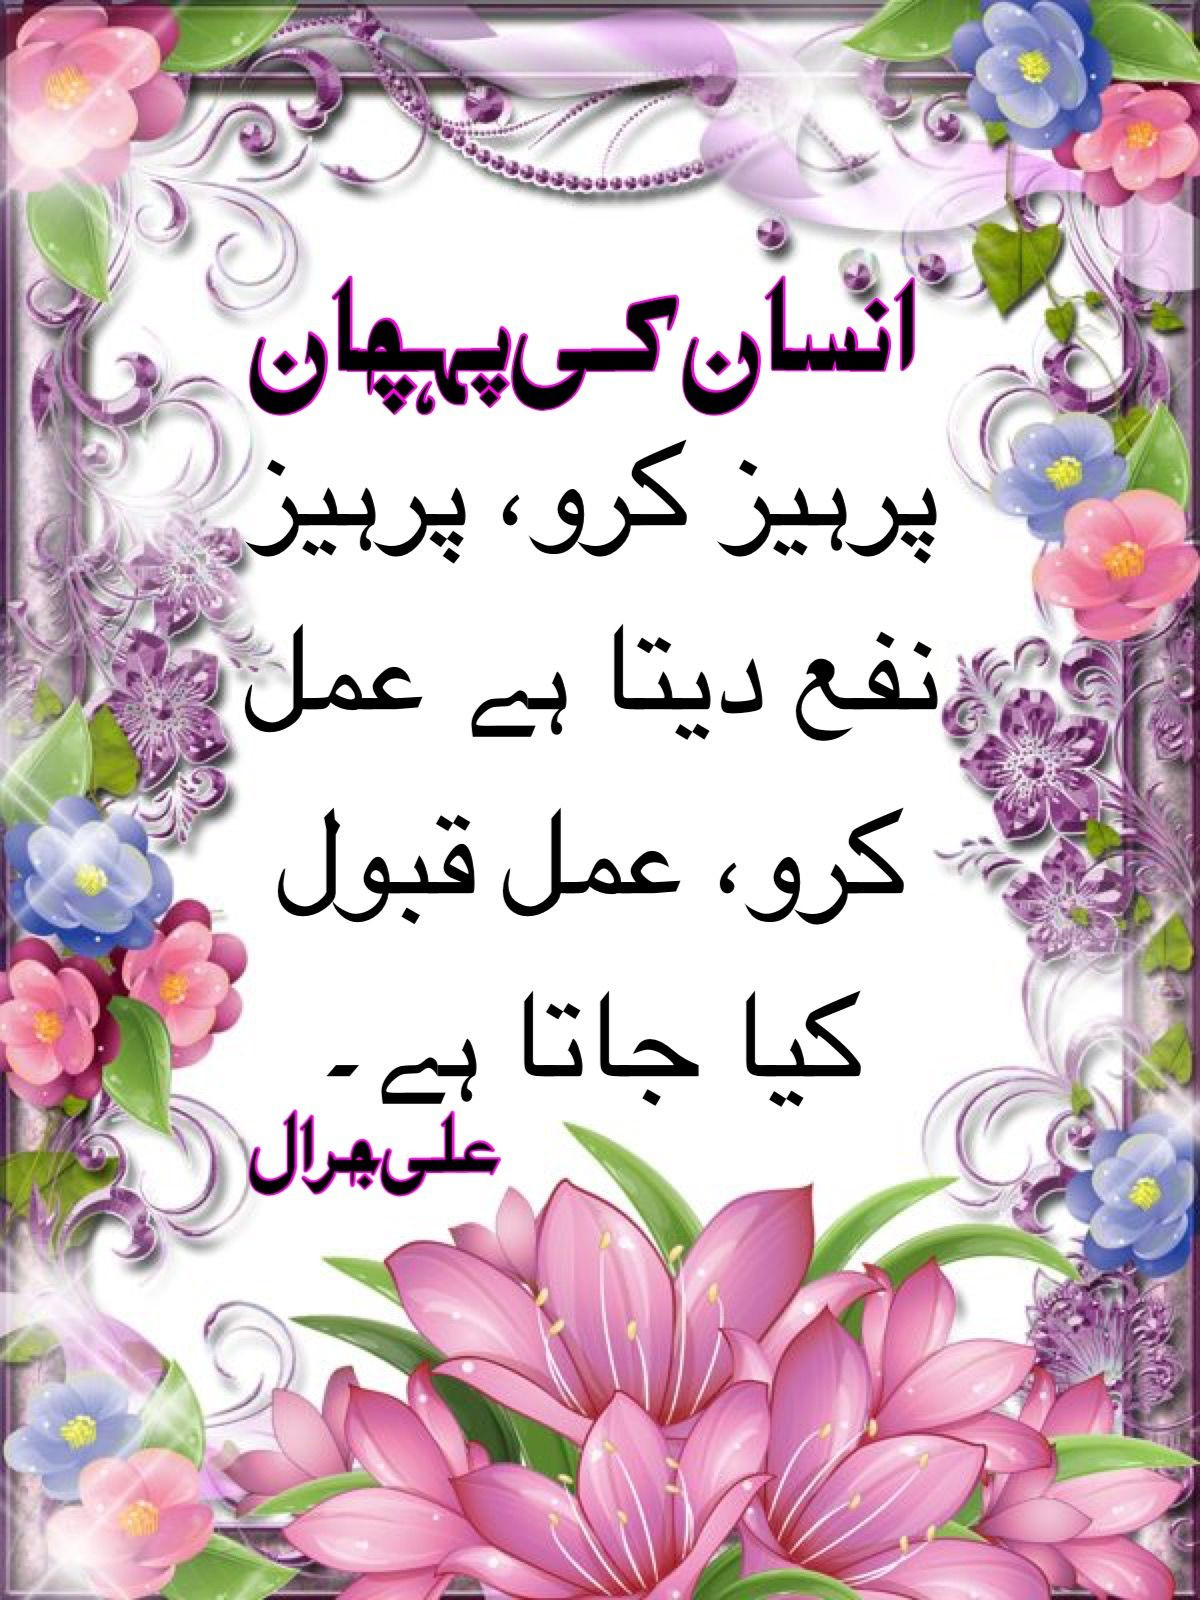 Pin by InSaN Ki PehChAN on Urdu Quotes (With images) Lei